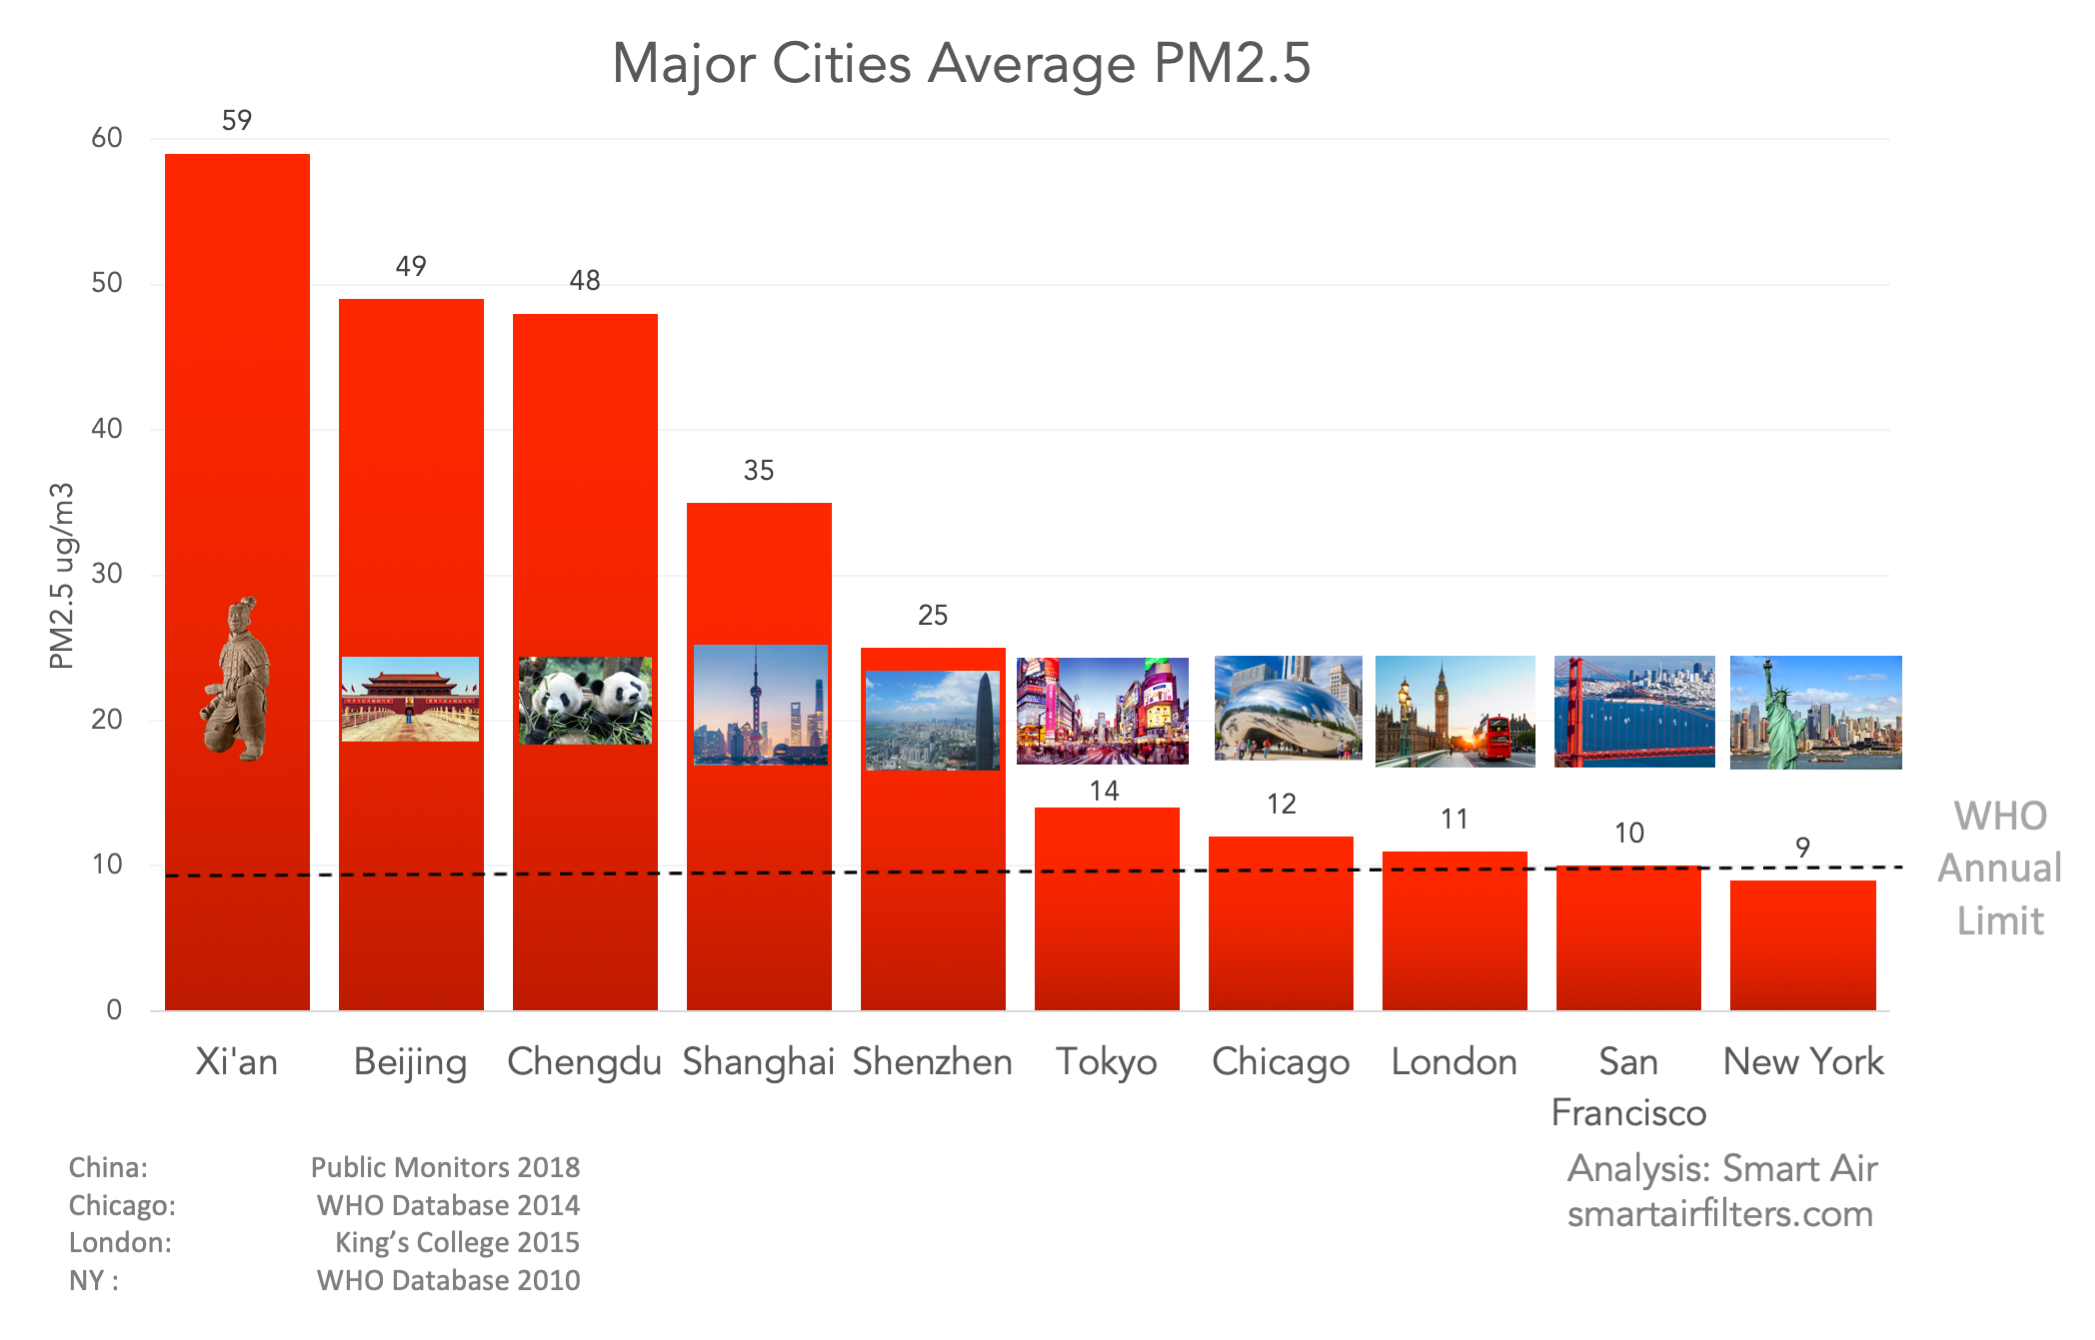 major cities average PM2.5